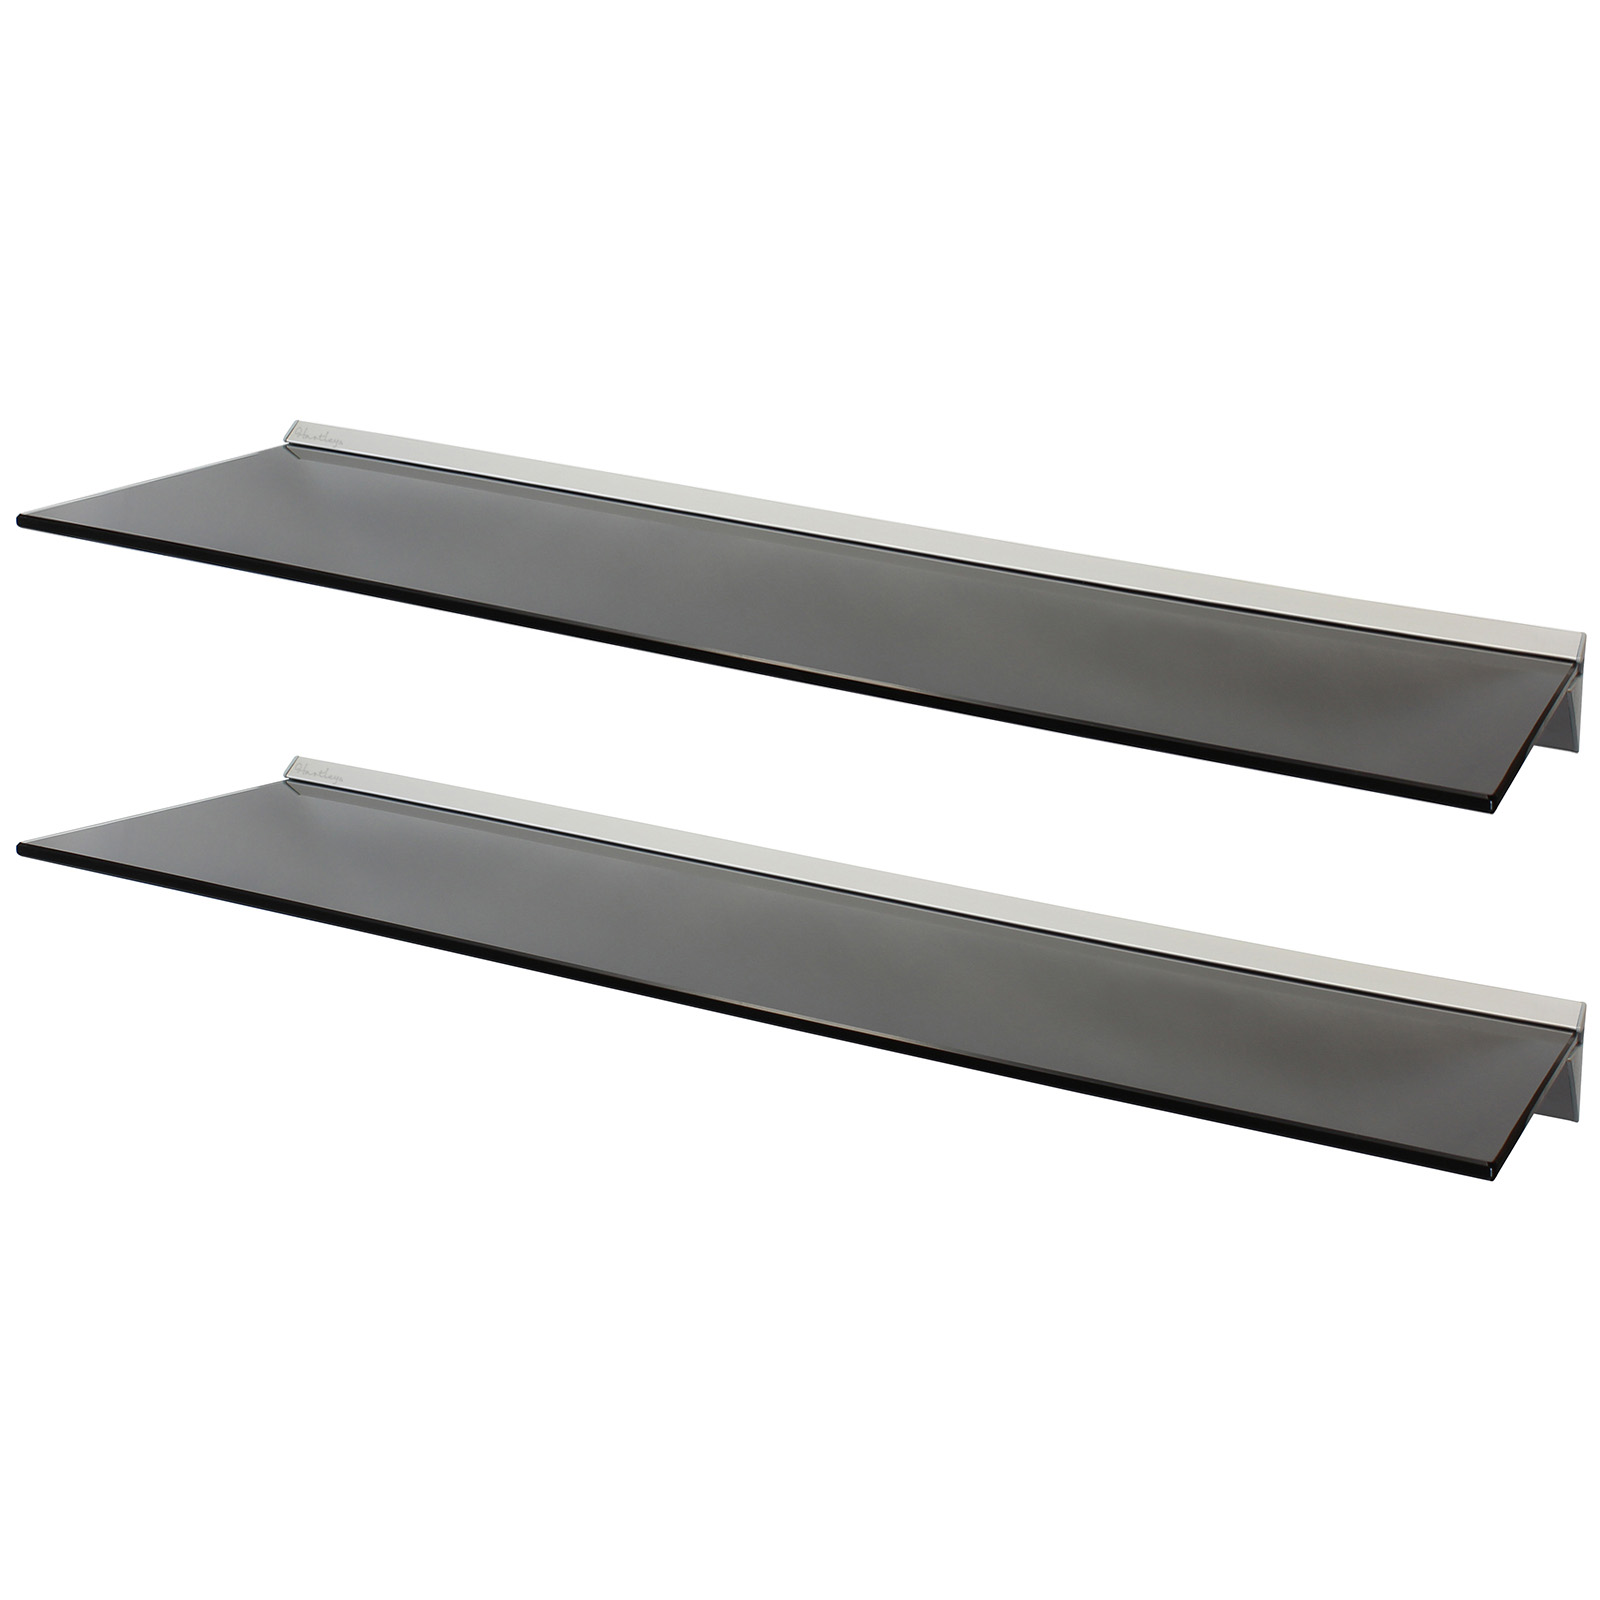 HARTLEYS PAIR 2x 100cm BLACK FLOATING GLASS WALL SHELVES